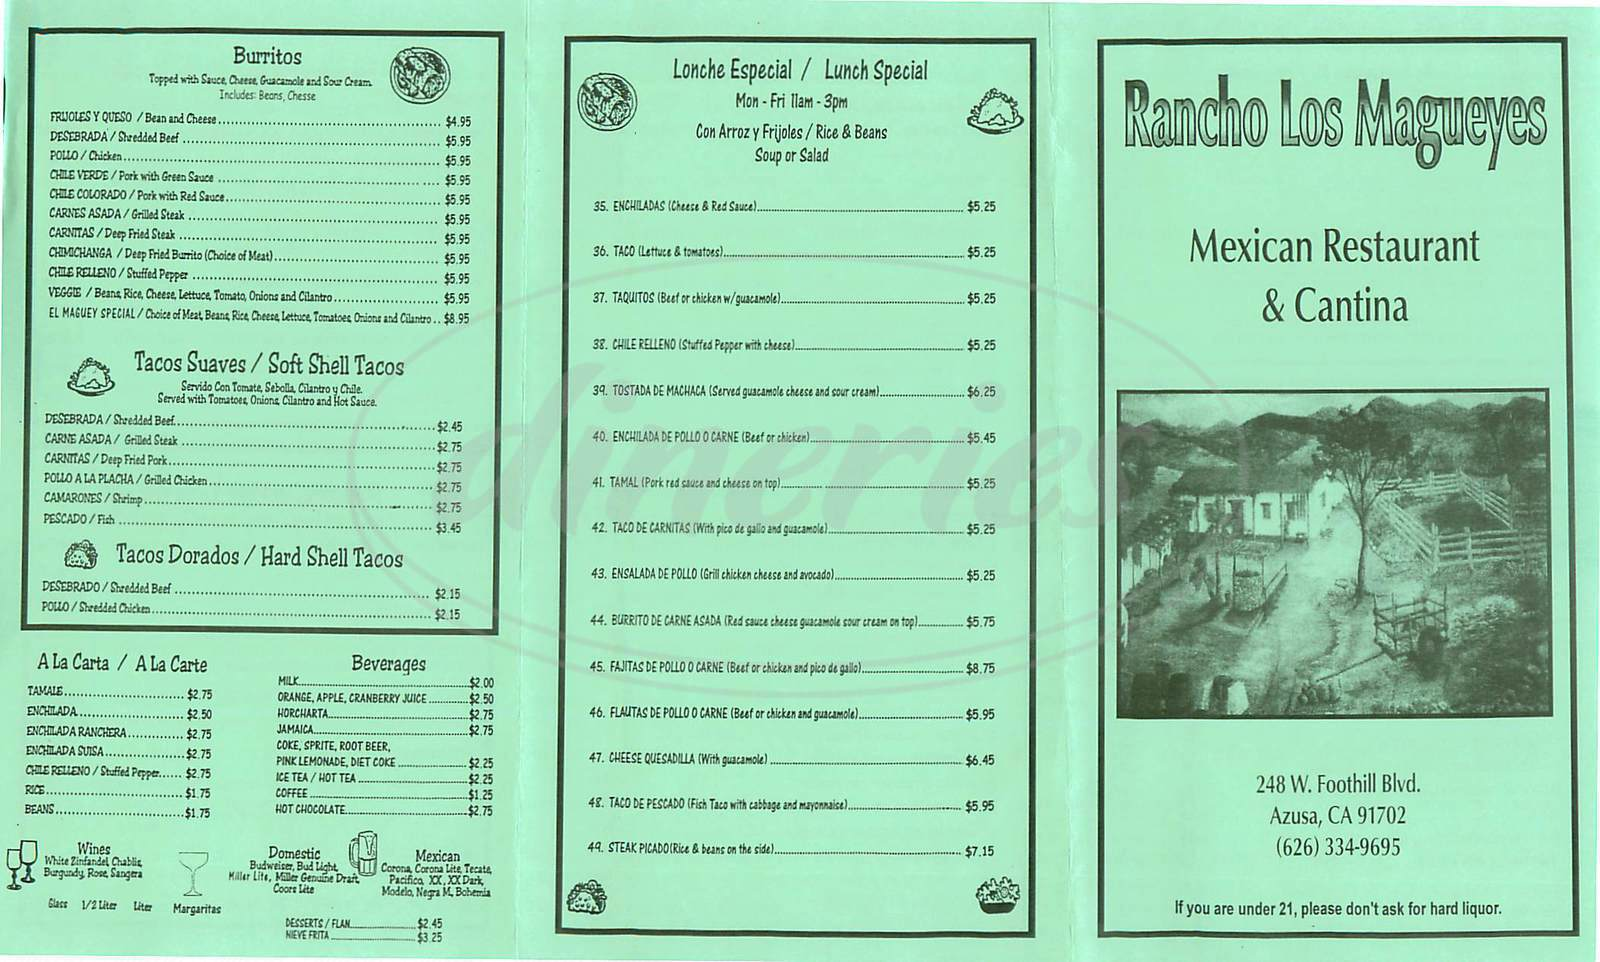 menu for Rancho Los Magueyes